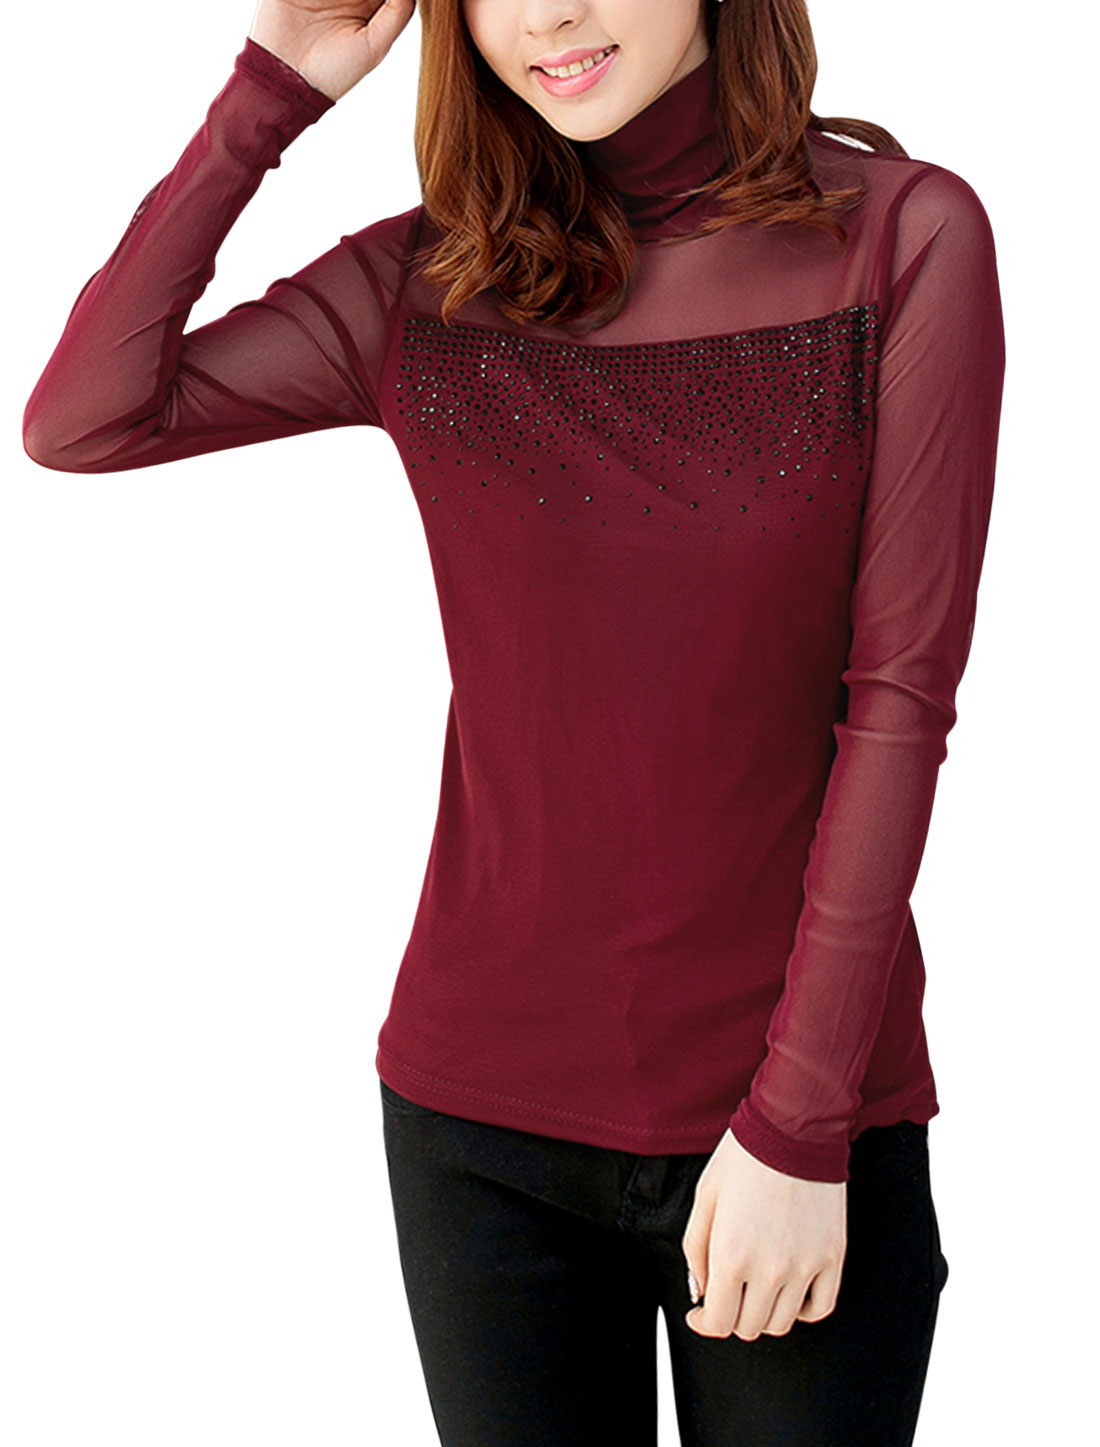 Women See Through Long Sleeve Slipover Slim Mesh Top Burgundy S